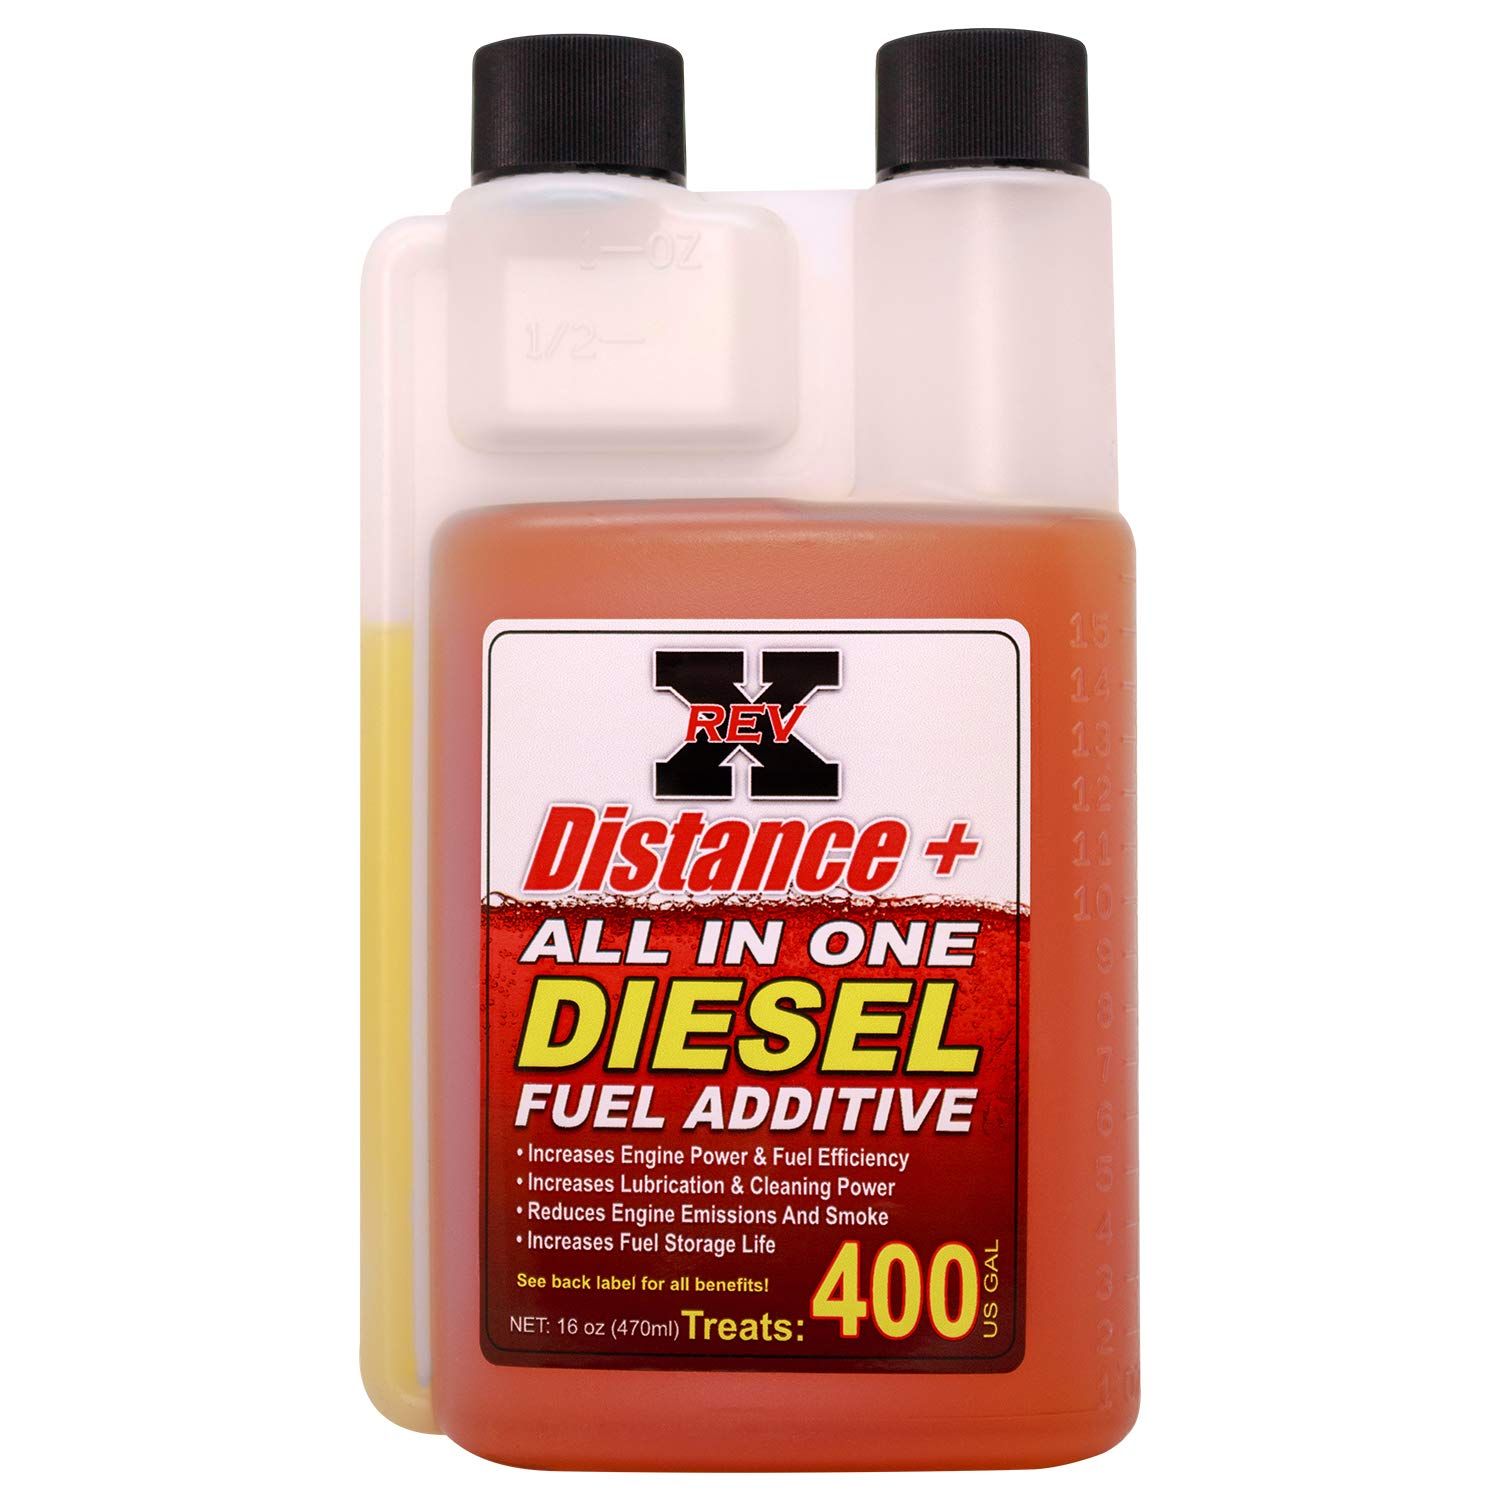 REV X Distance + Diesel Fuel Additive - 16 oz. Treats 400 Gallons by REV-X